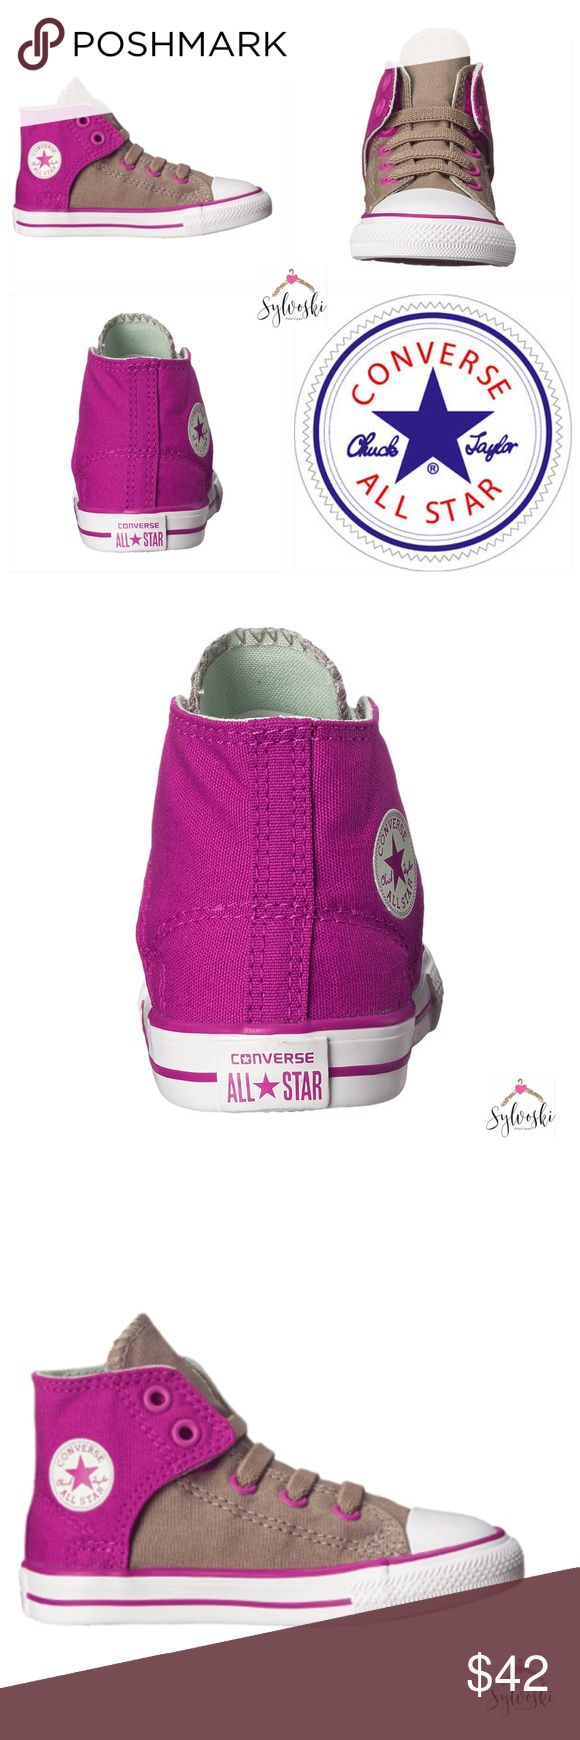 🆕 Chuck Taylor Hi Malt Pink Sapphire Mint Julep Converse Kids Chuck Taylor® All Star® Easy Hi Malt Pink Sapphire Mint Julep Sale,Converse High Tops Leather,Wide Varieties. easy hi shoes!high-top silhouette. durable canvas upper.iconic rubber shell toe for durability.elastic laces with concealed hook-and-loop for easy on and off. soft textile lining for comfort. vulcanized construction.durable rubber outsole with the traditional NWT no box Converse Shoes Sneakers